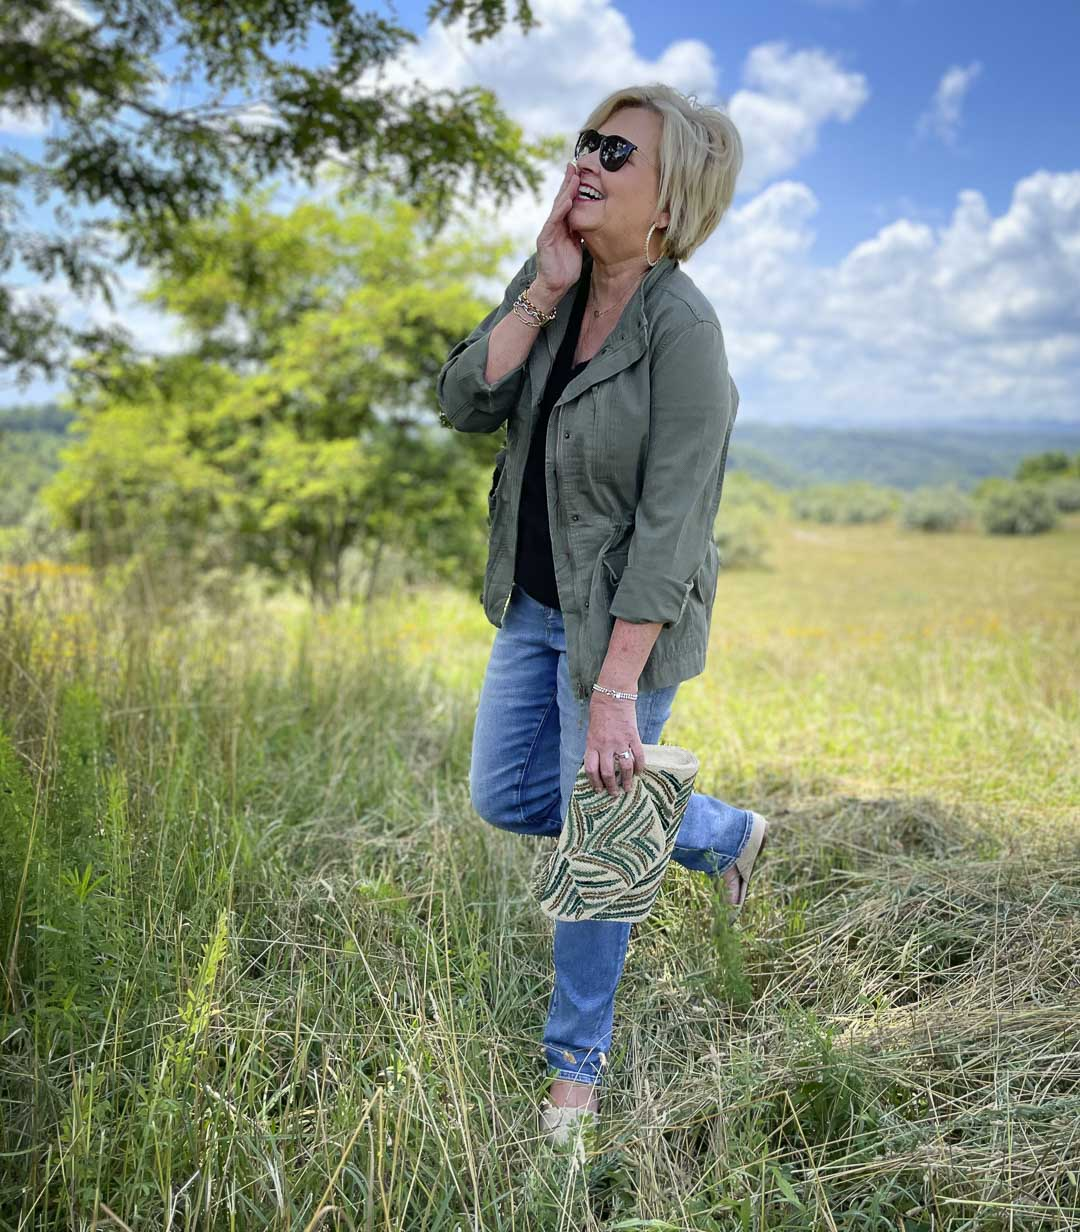 Fashion Blogger 50 Is Not Old is laughing while wearing black and olive together with jeans and an embroidered clutch